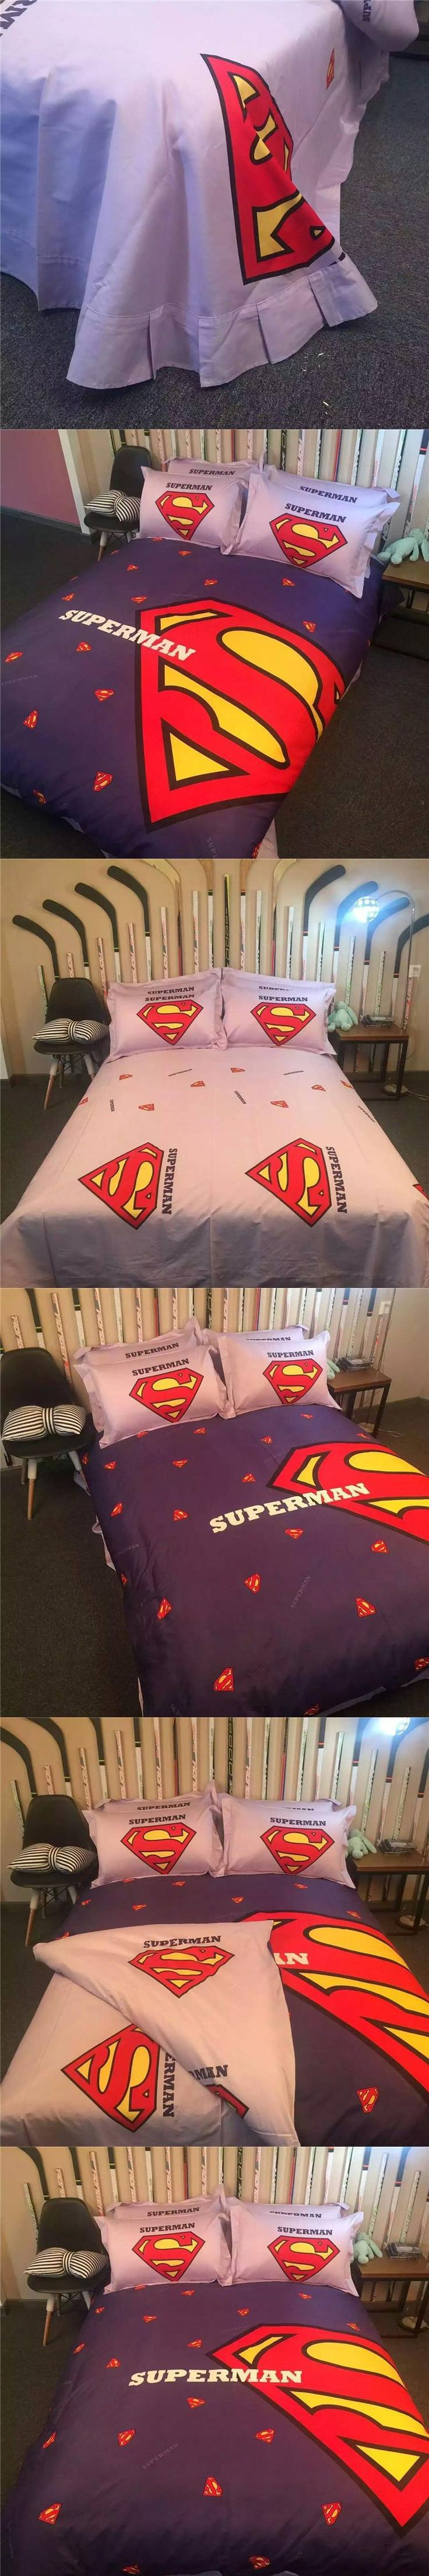 100% Cotton 3D Superman Duvet Cover Set Full Queen bed Sheet 4pcs bedding  sets Bed